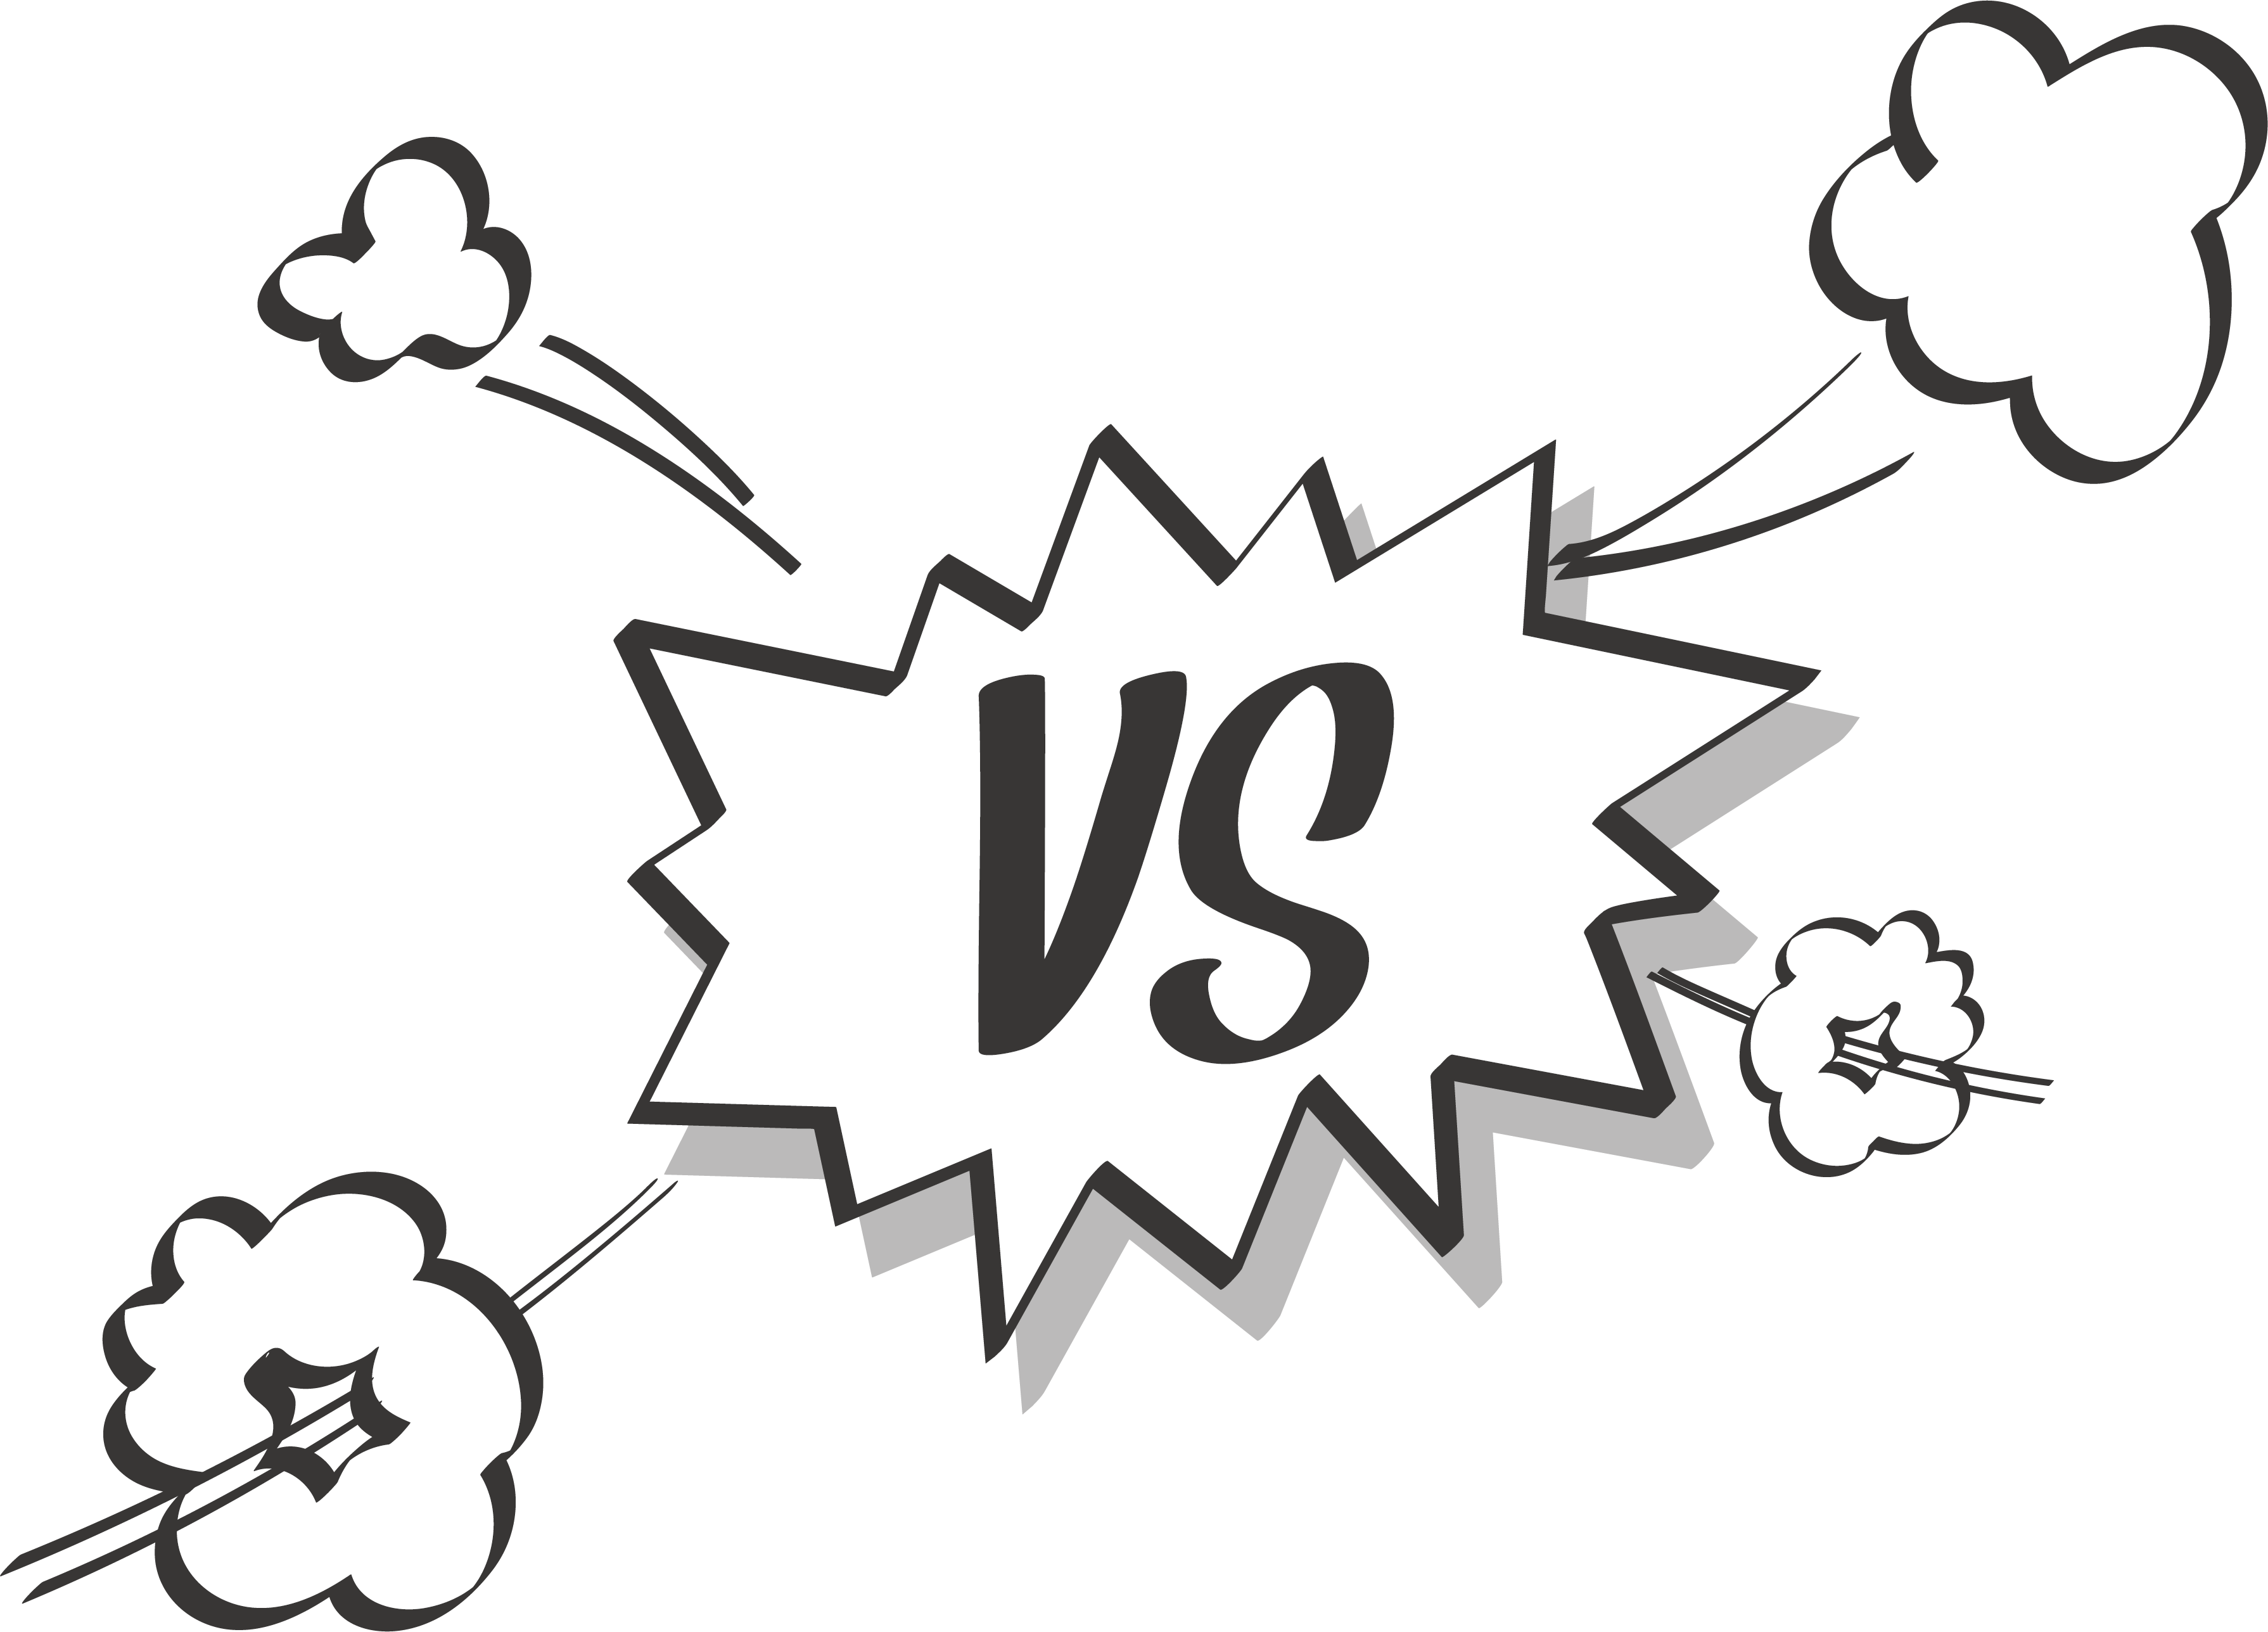 Effect contrast box transprent. Explosion clipart black and white